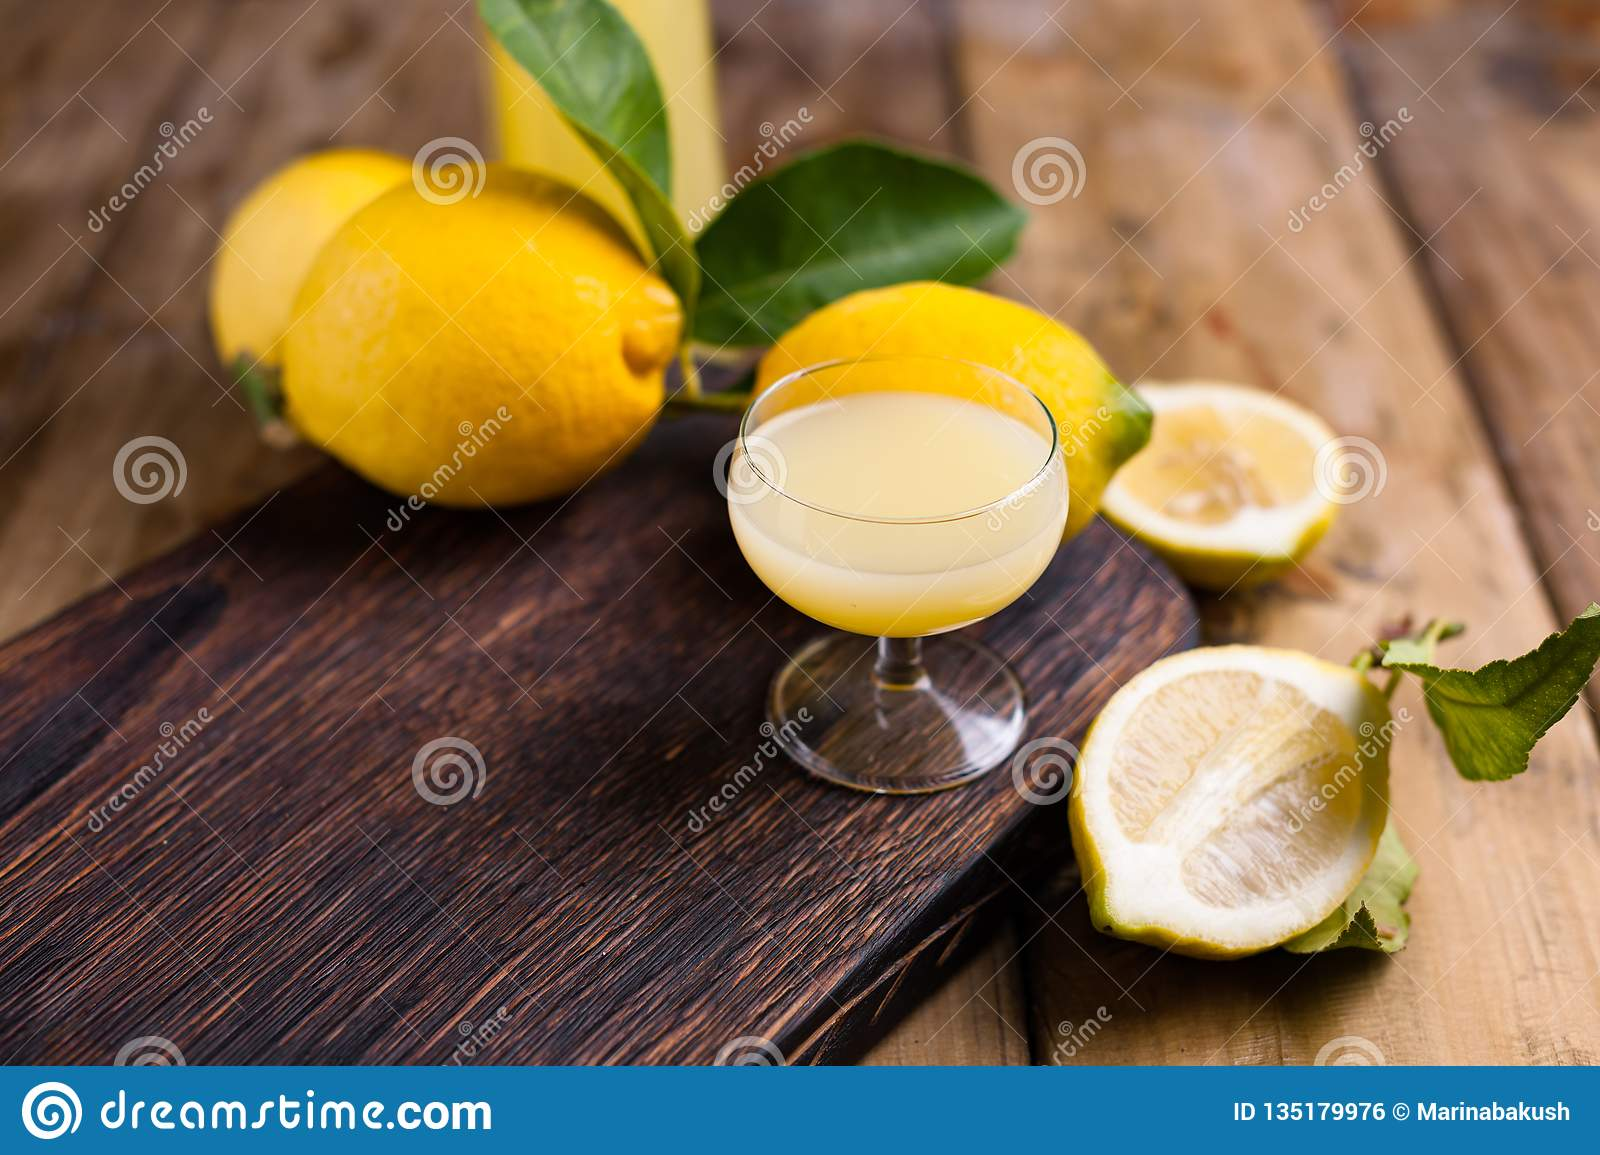 Limoncello and lemons on a wooden board. The traditional alcohol